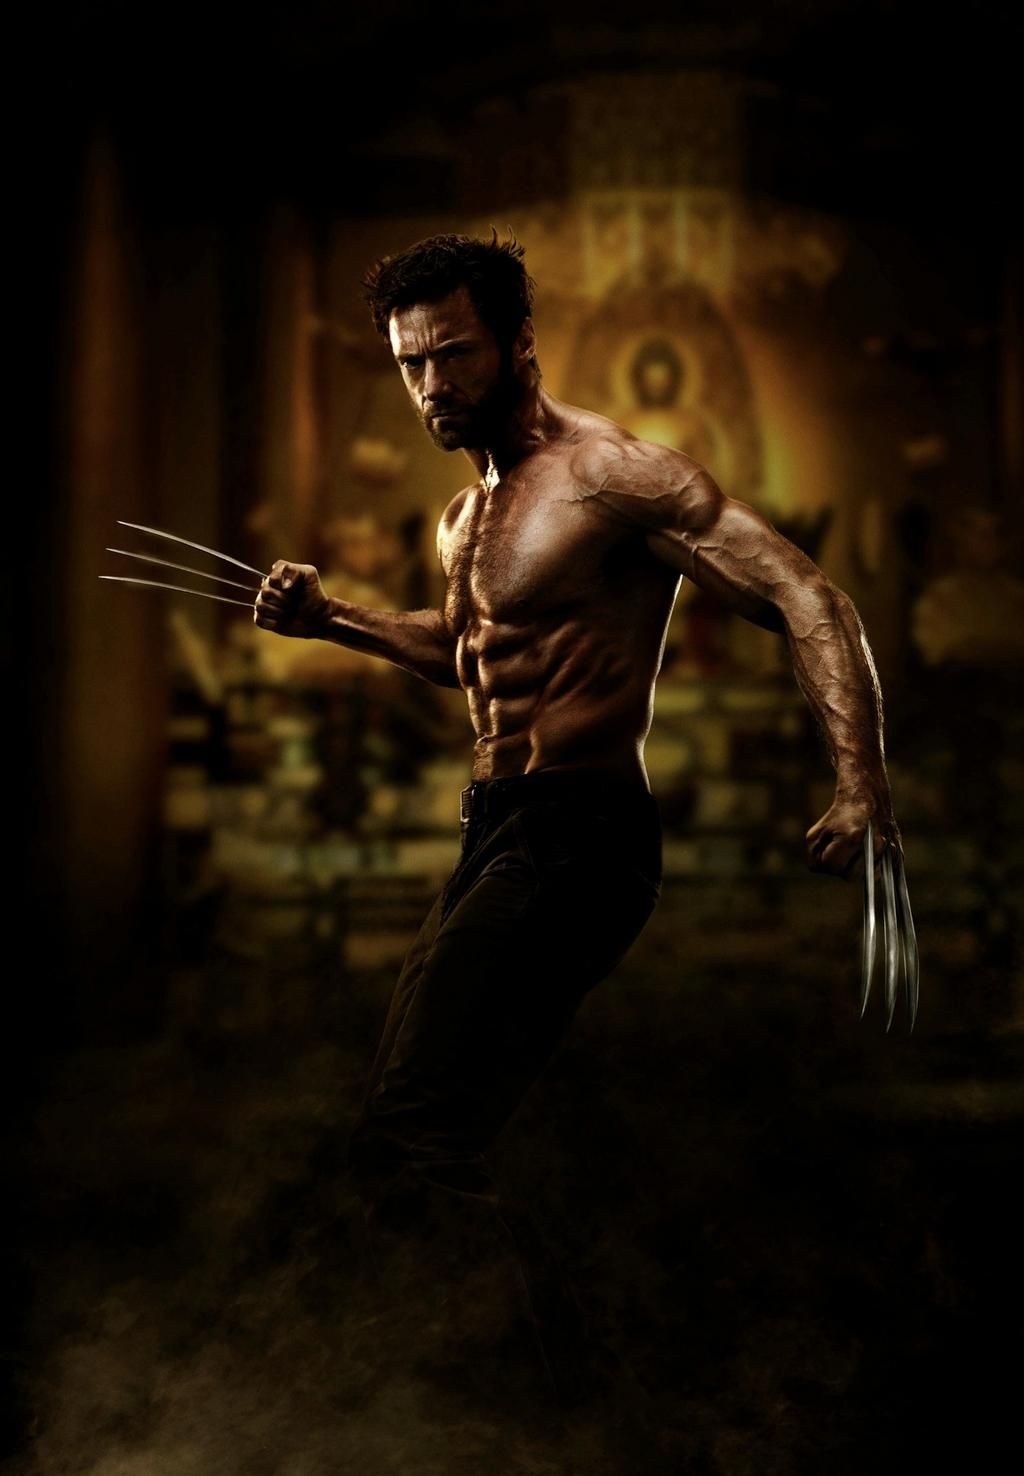 Check it out, bub, here's the first official photo of Hugh Jackman as Wolverine in next year's The Wolverine film, as debuted on @Marisa Goldberg- Tuhy's Twitter.        Stay tuned for much more about The Wolverine in the coming months!